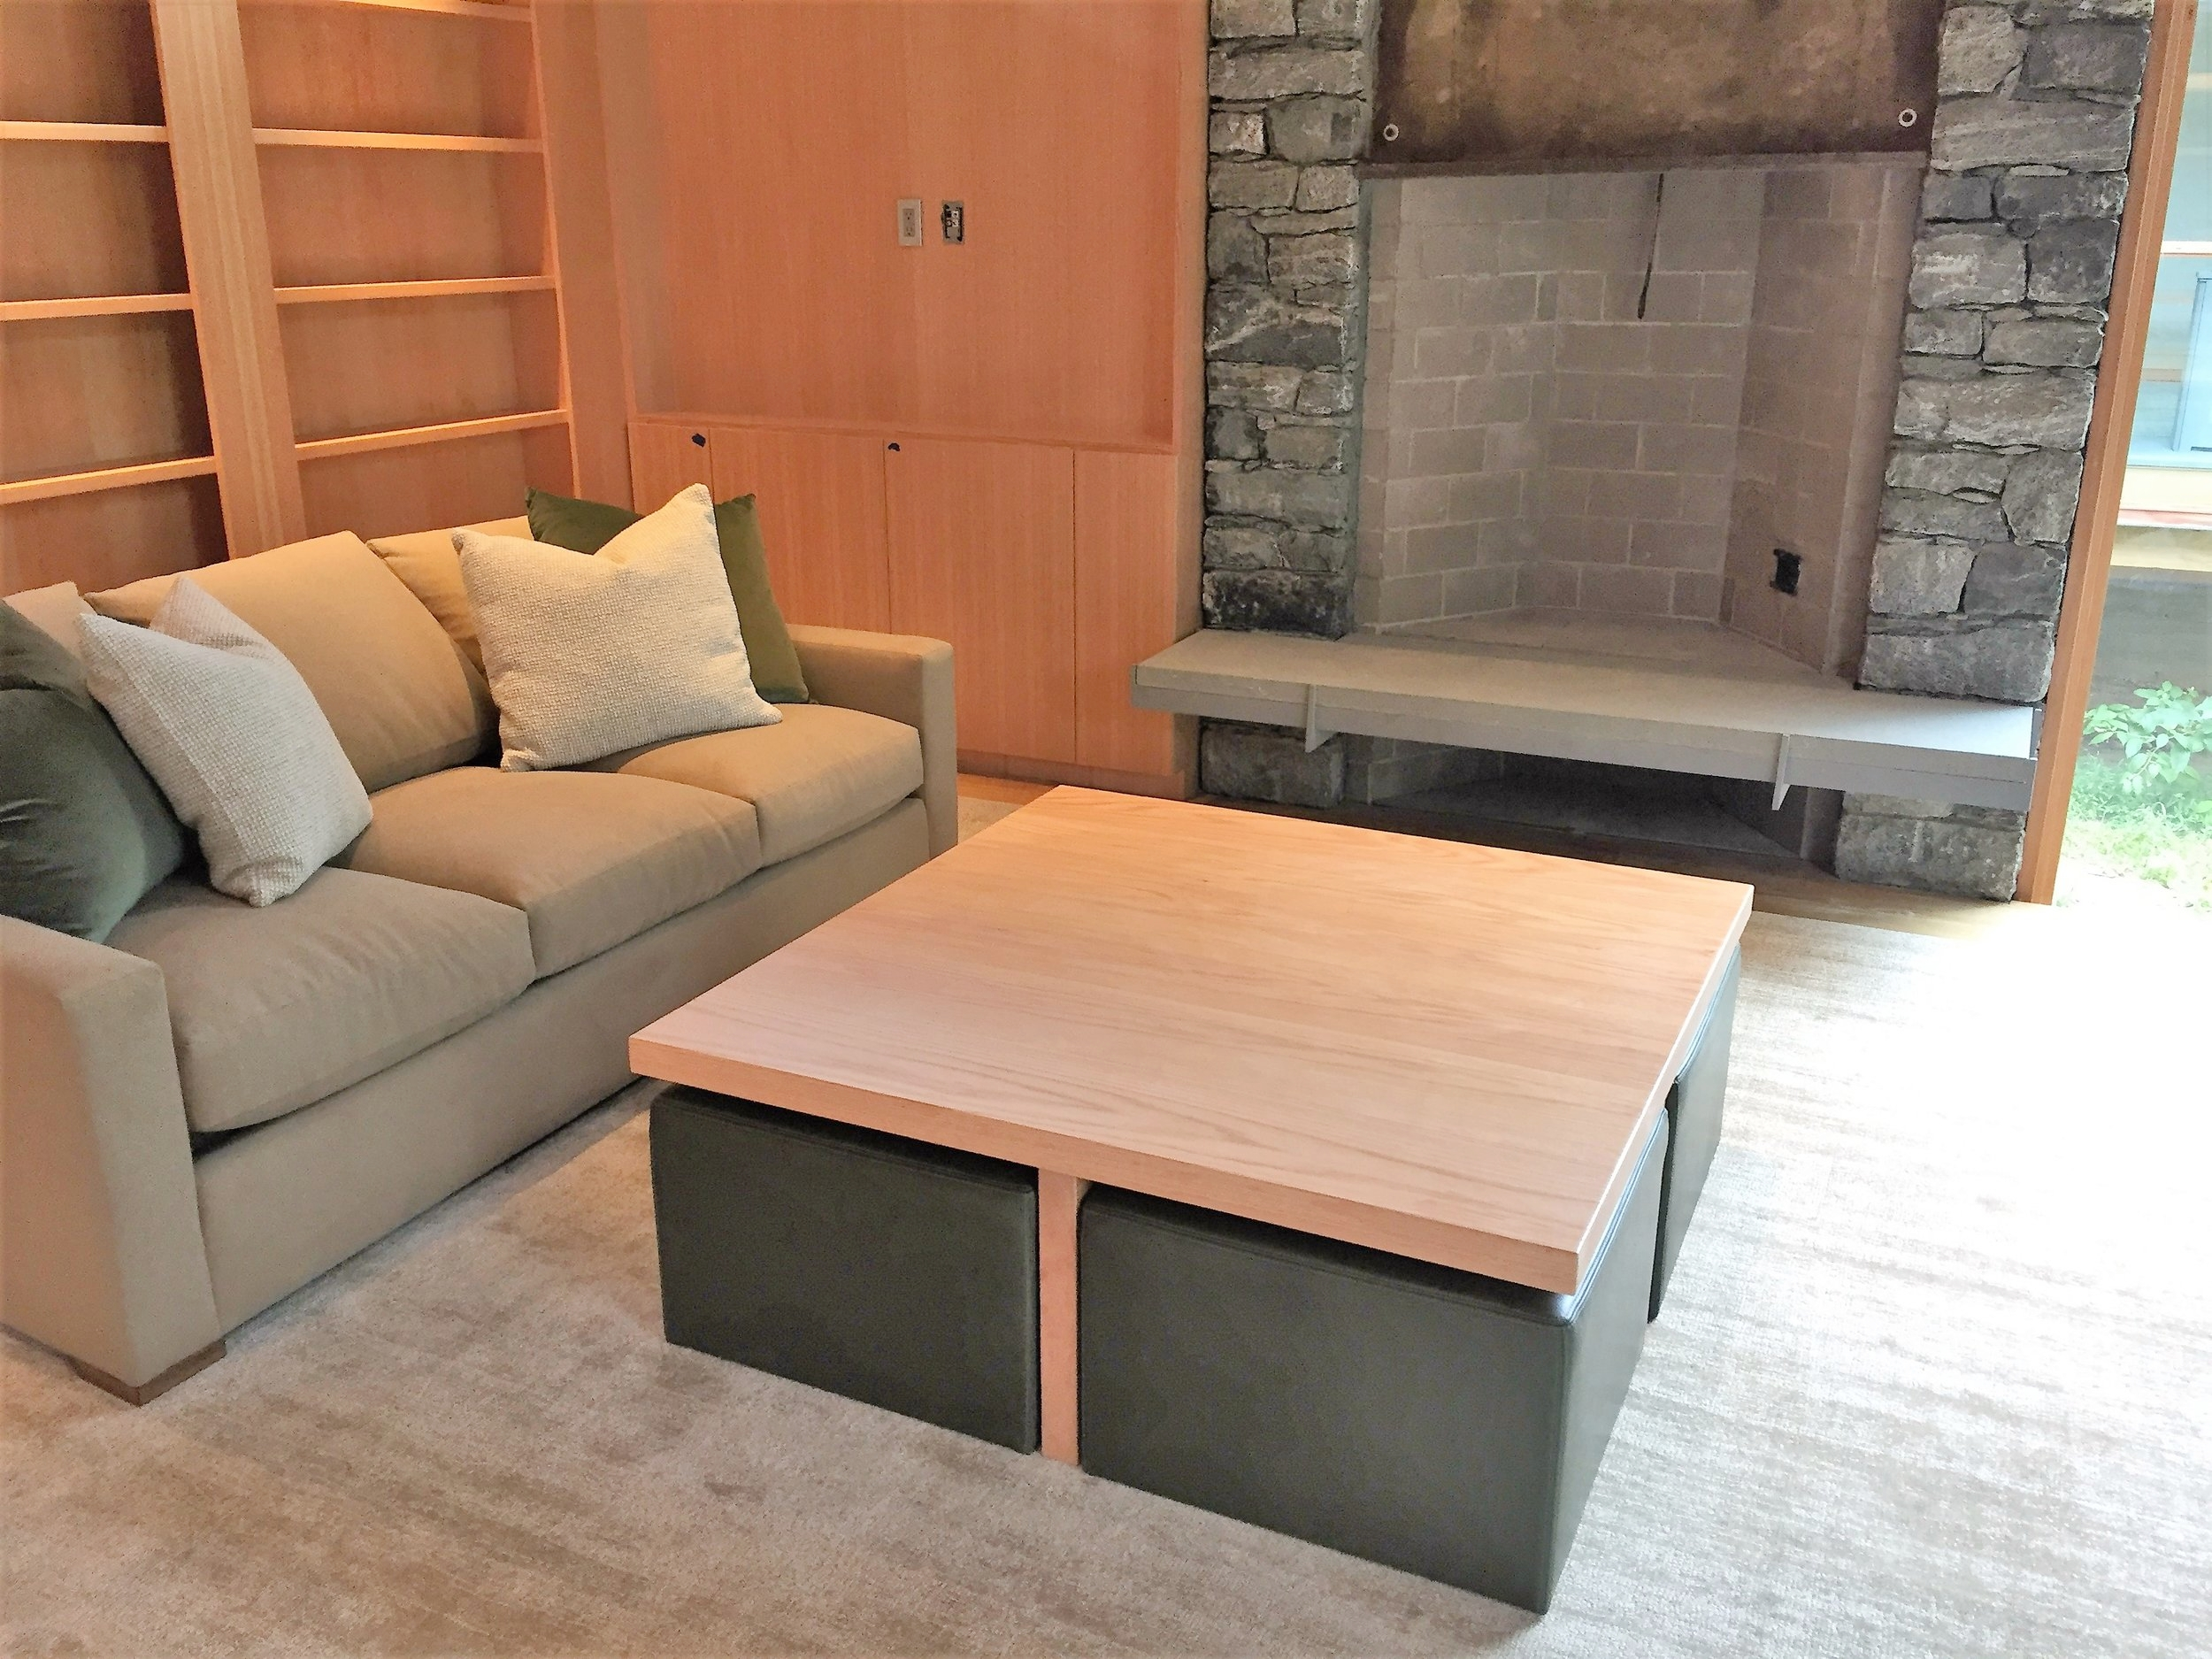 Red oak coffee table with seating under.